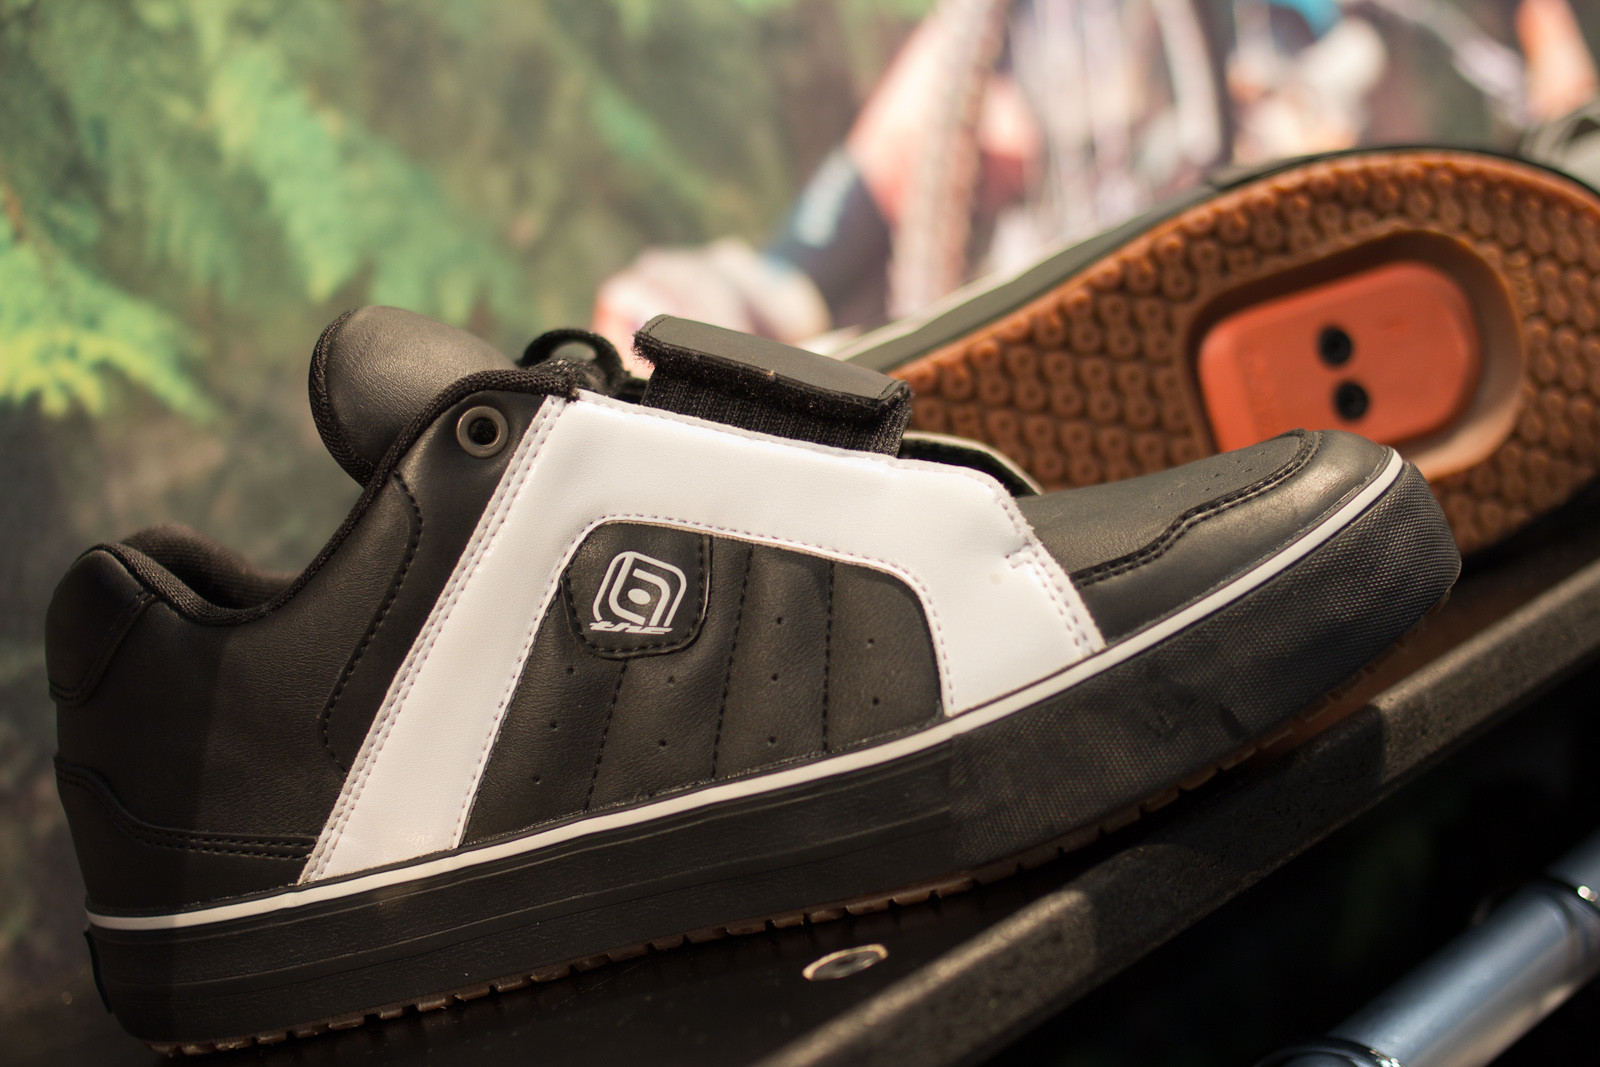 t.h.e. Hermes Shoes - 2013 Products from Interbike 2012, Part 2 - Mountain Biking Pictures - Vital MTB